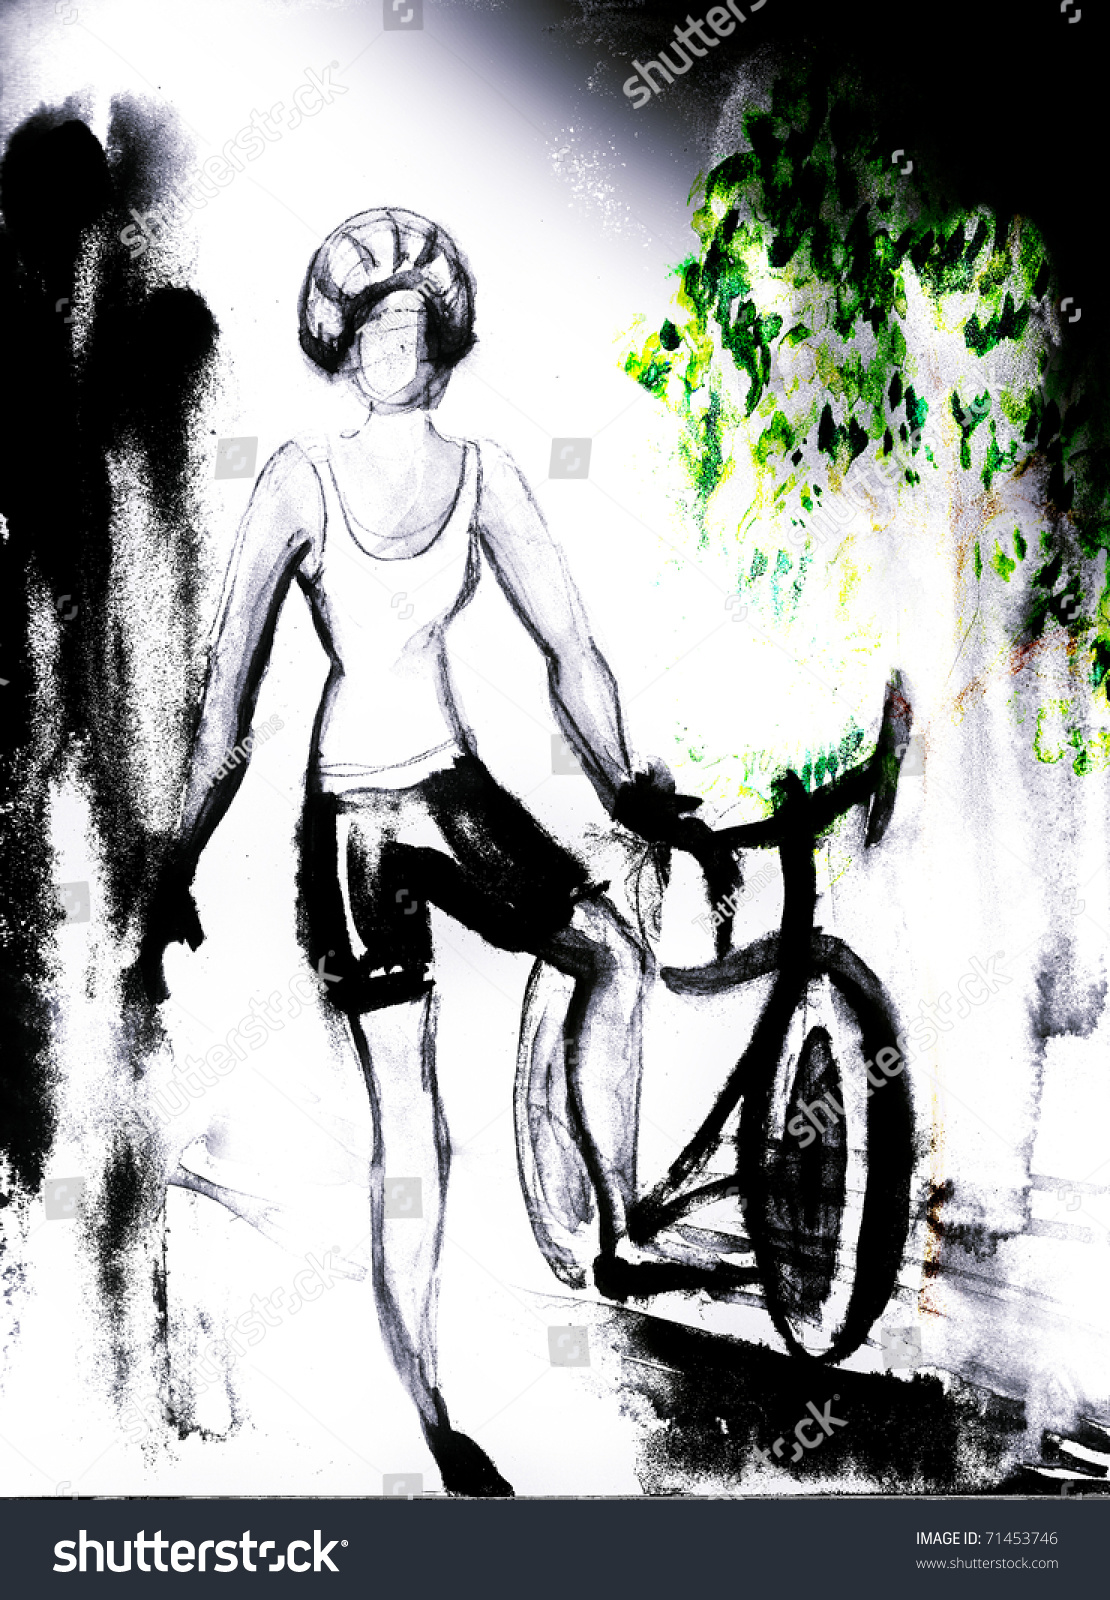 Girl with bicycle. Sport theme. Black and white with green leaves. My own drawing.